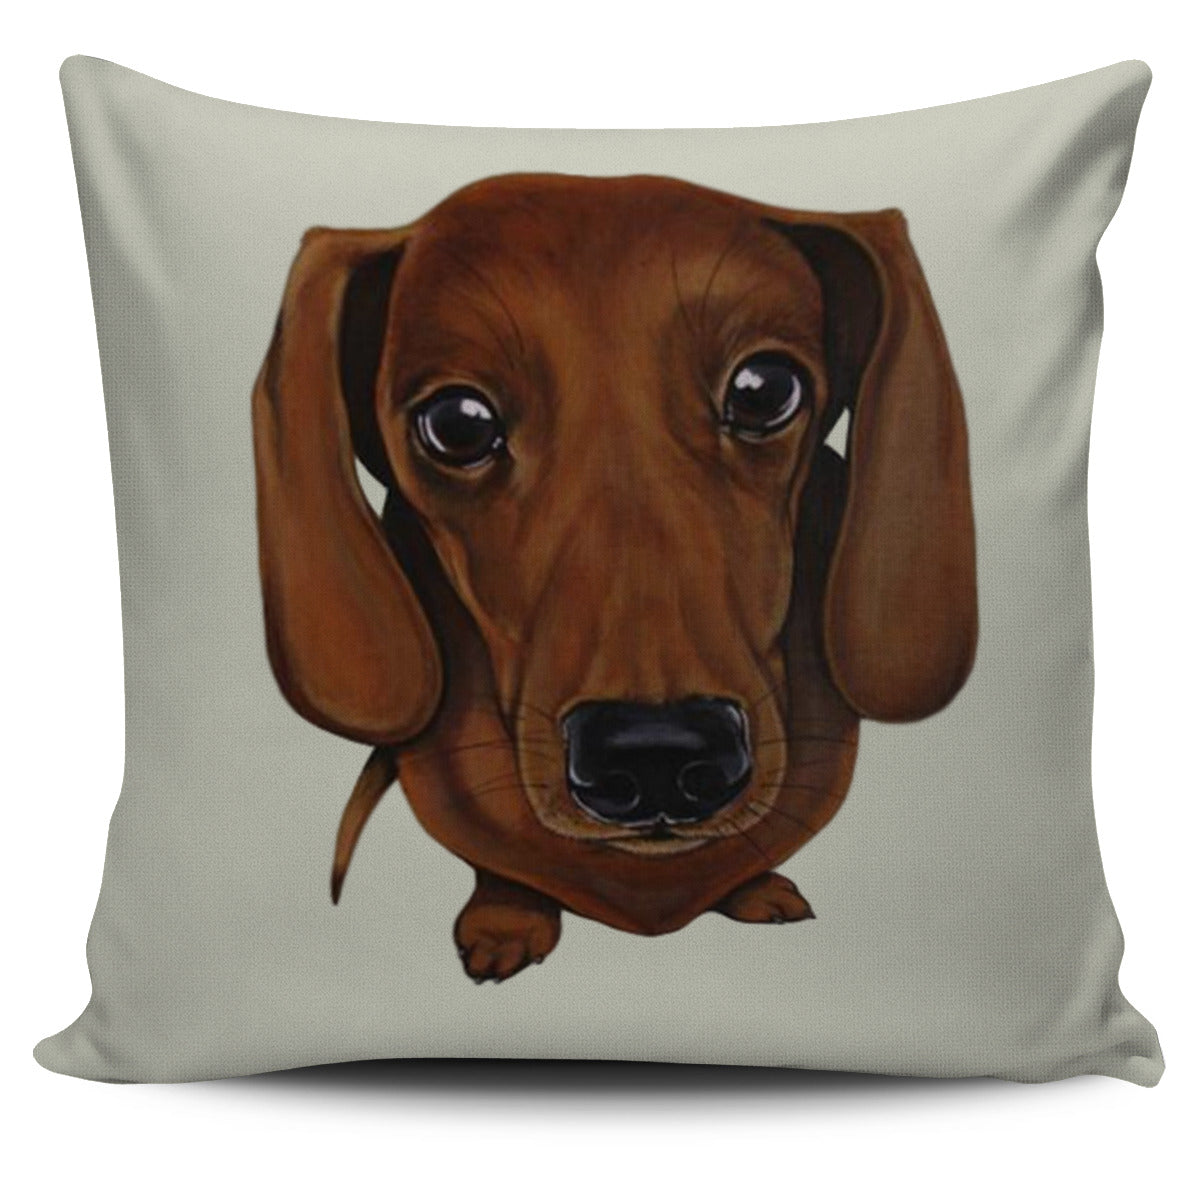 Dachshund Pillow Cover